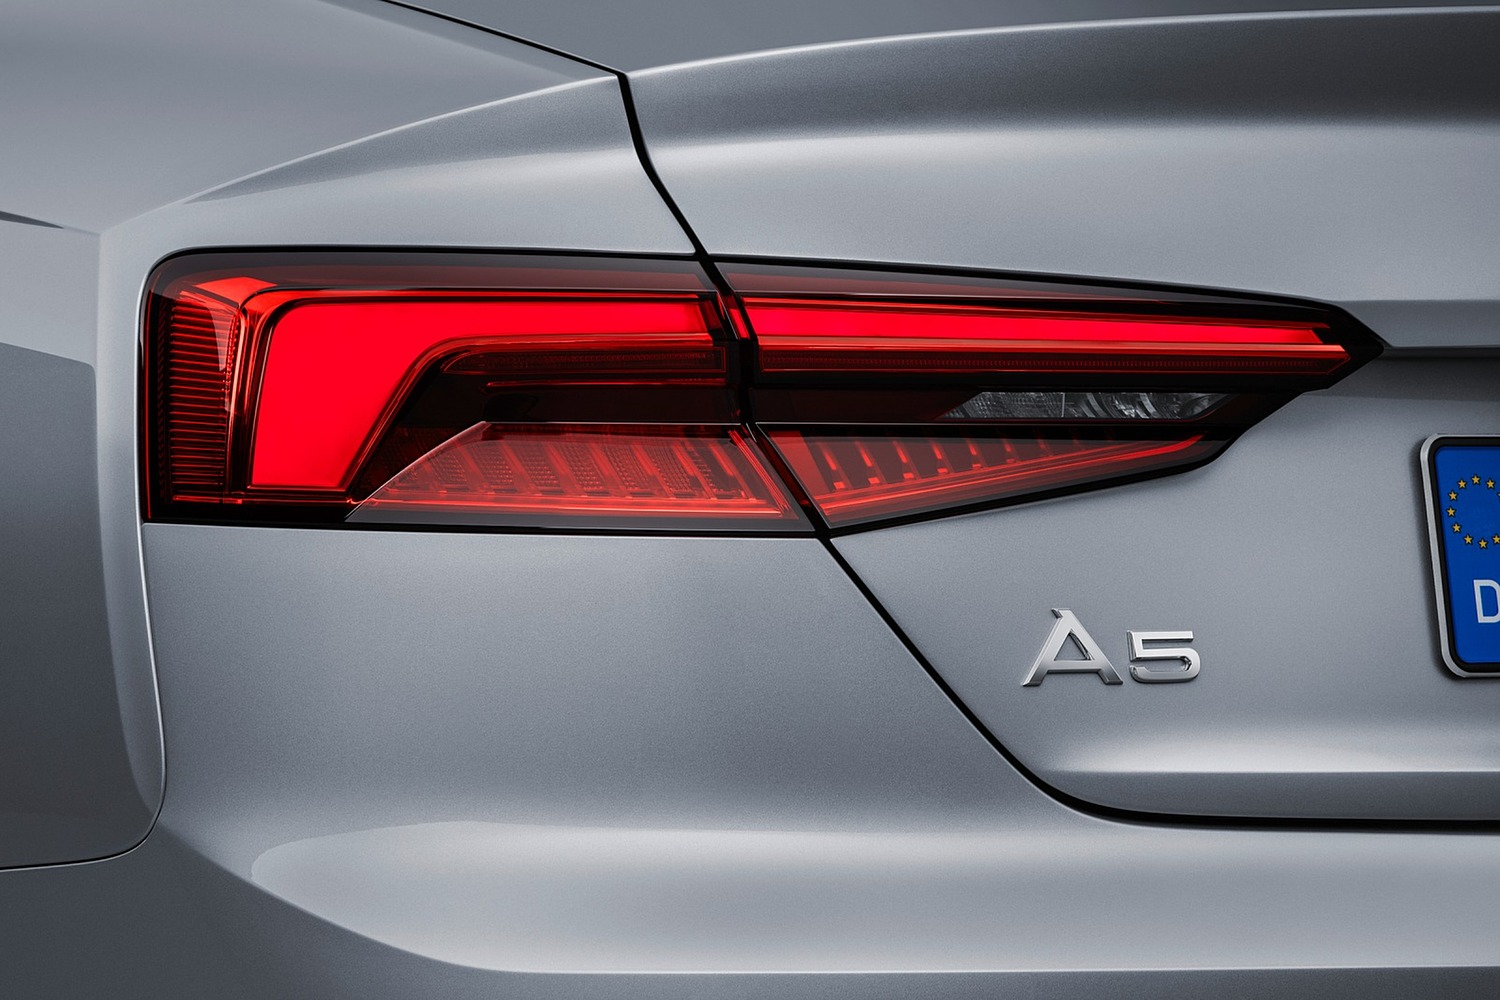 2018 Audi A5 Prestige quattro Coupe Rear Badge. European Model Shown.